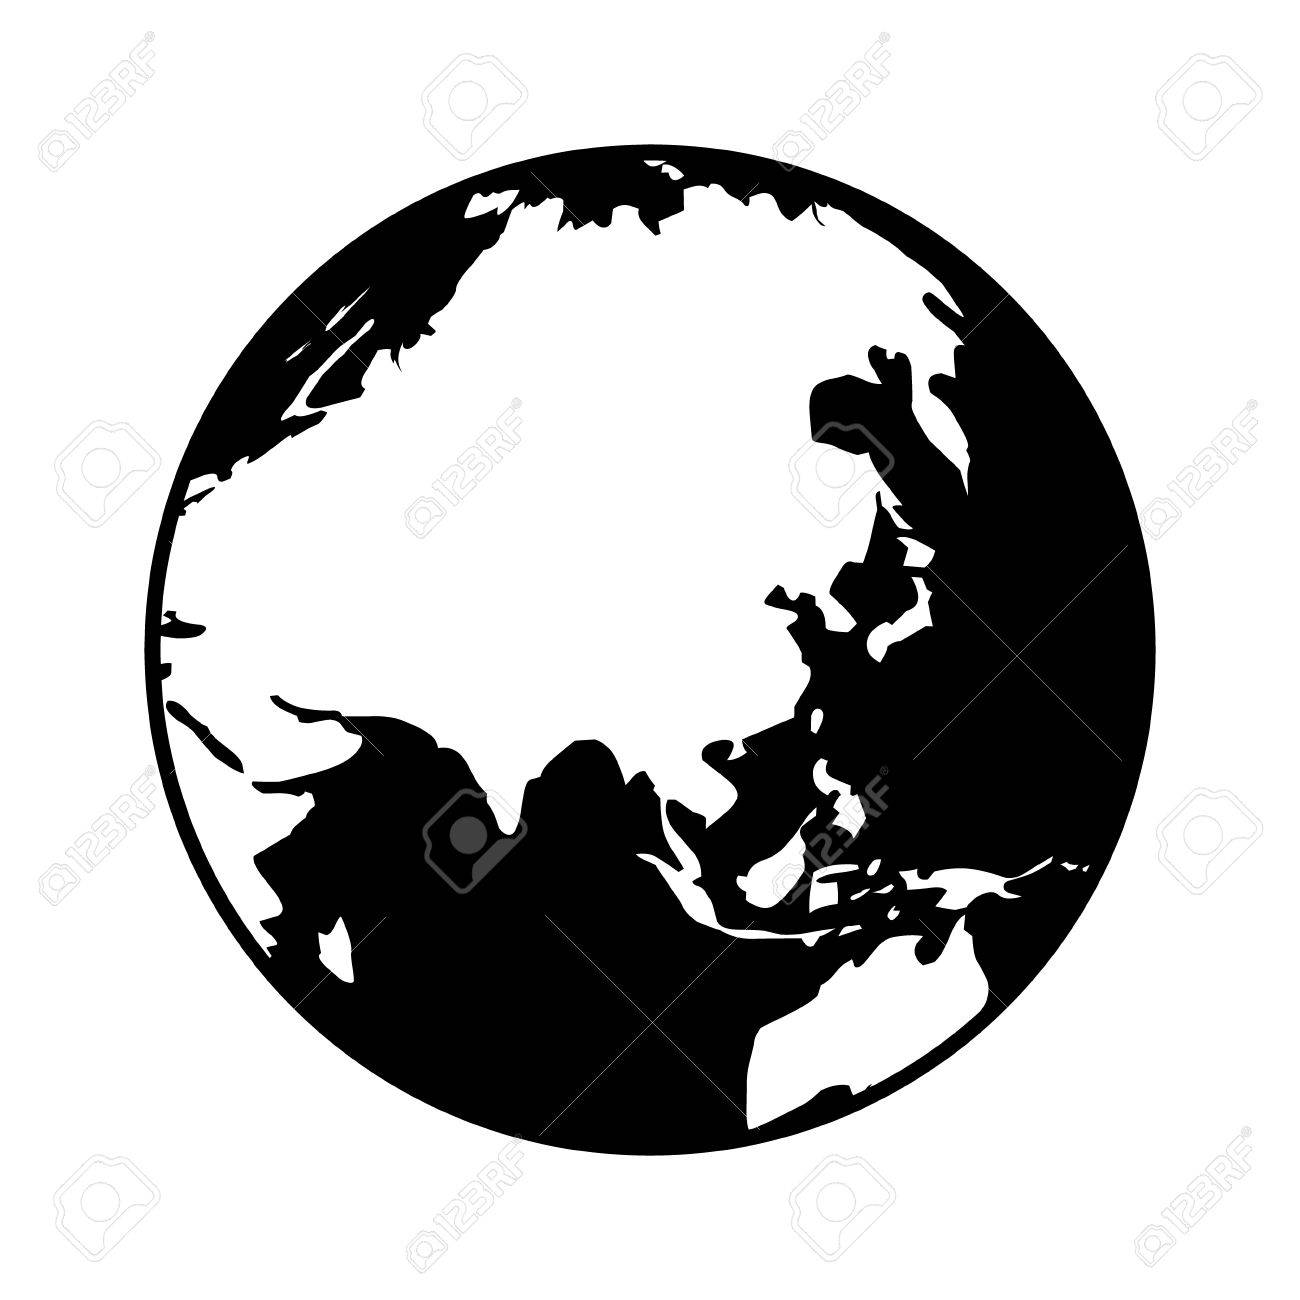 World map globe or planet earth showing asia flat icon for apps world map globe or planet earth showing asia flat icon for apps and websites stock vector gumiabroncs Gallery